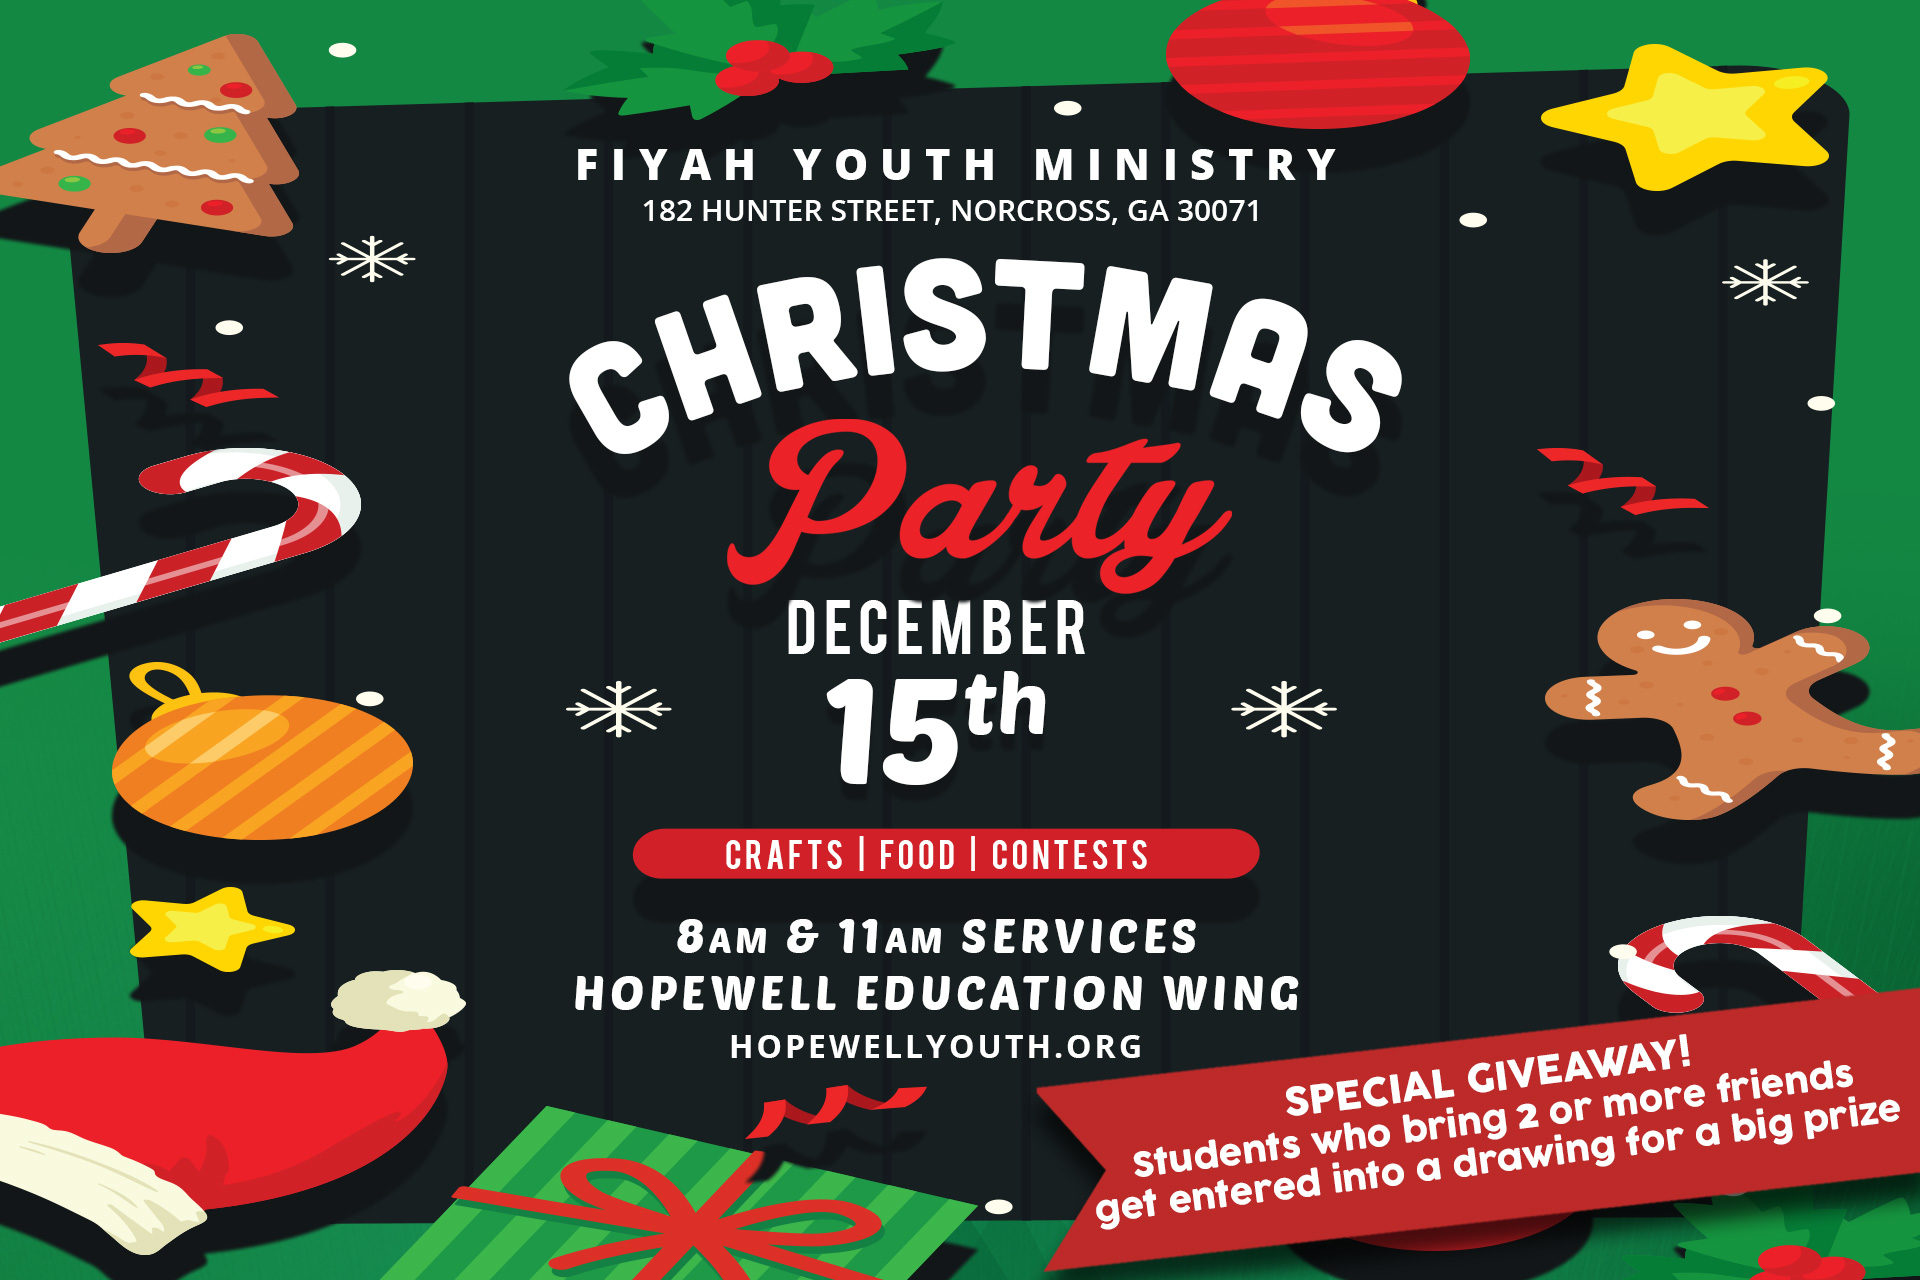 Flyer---Christmas-Party-2019-1920